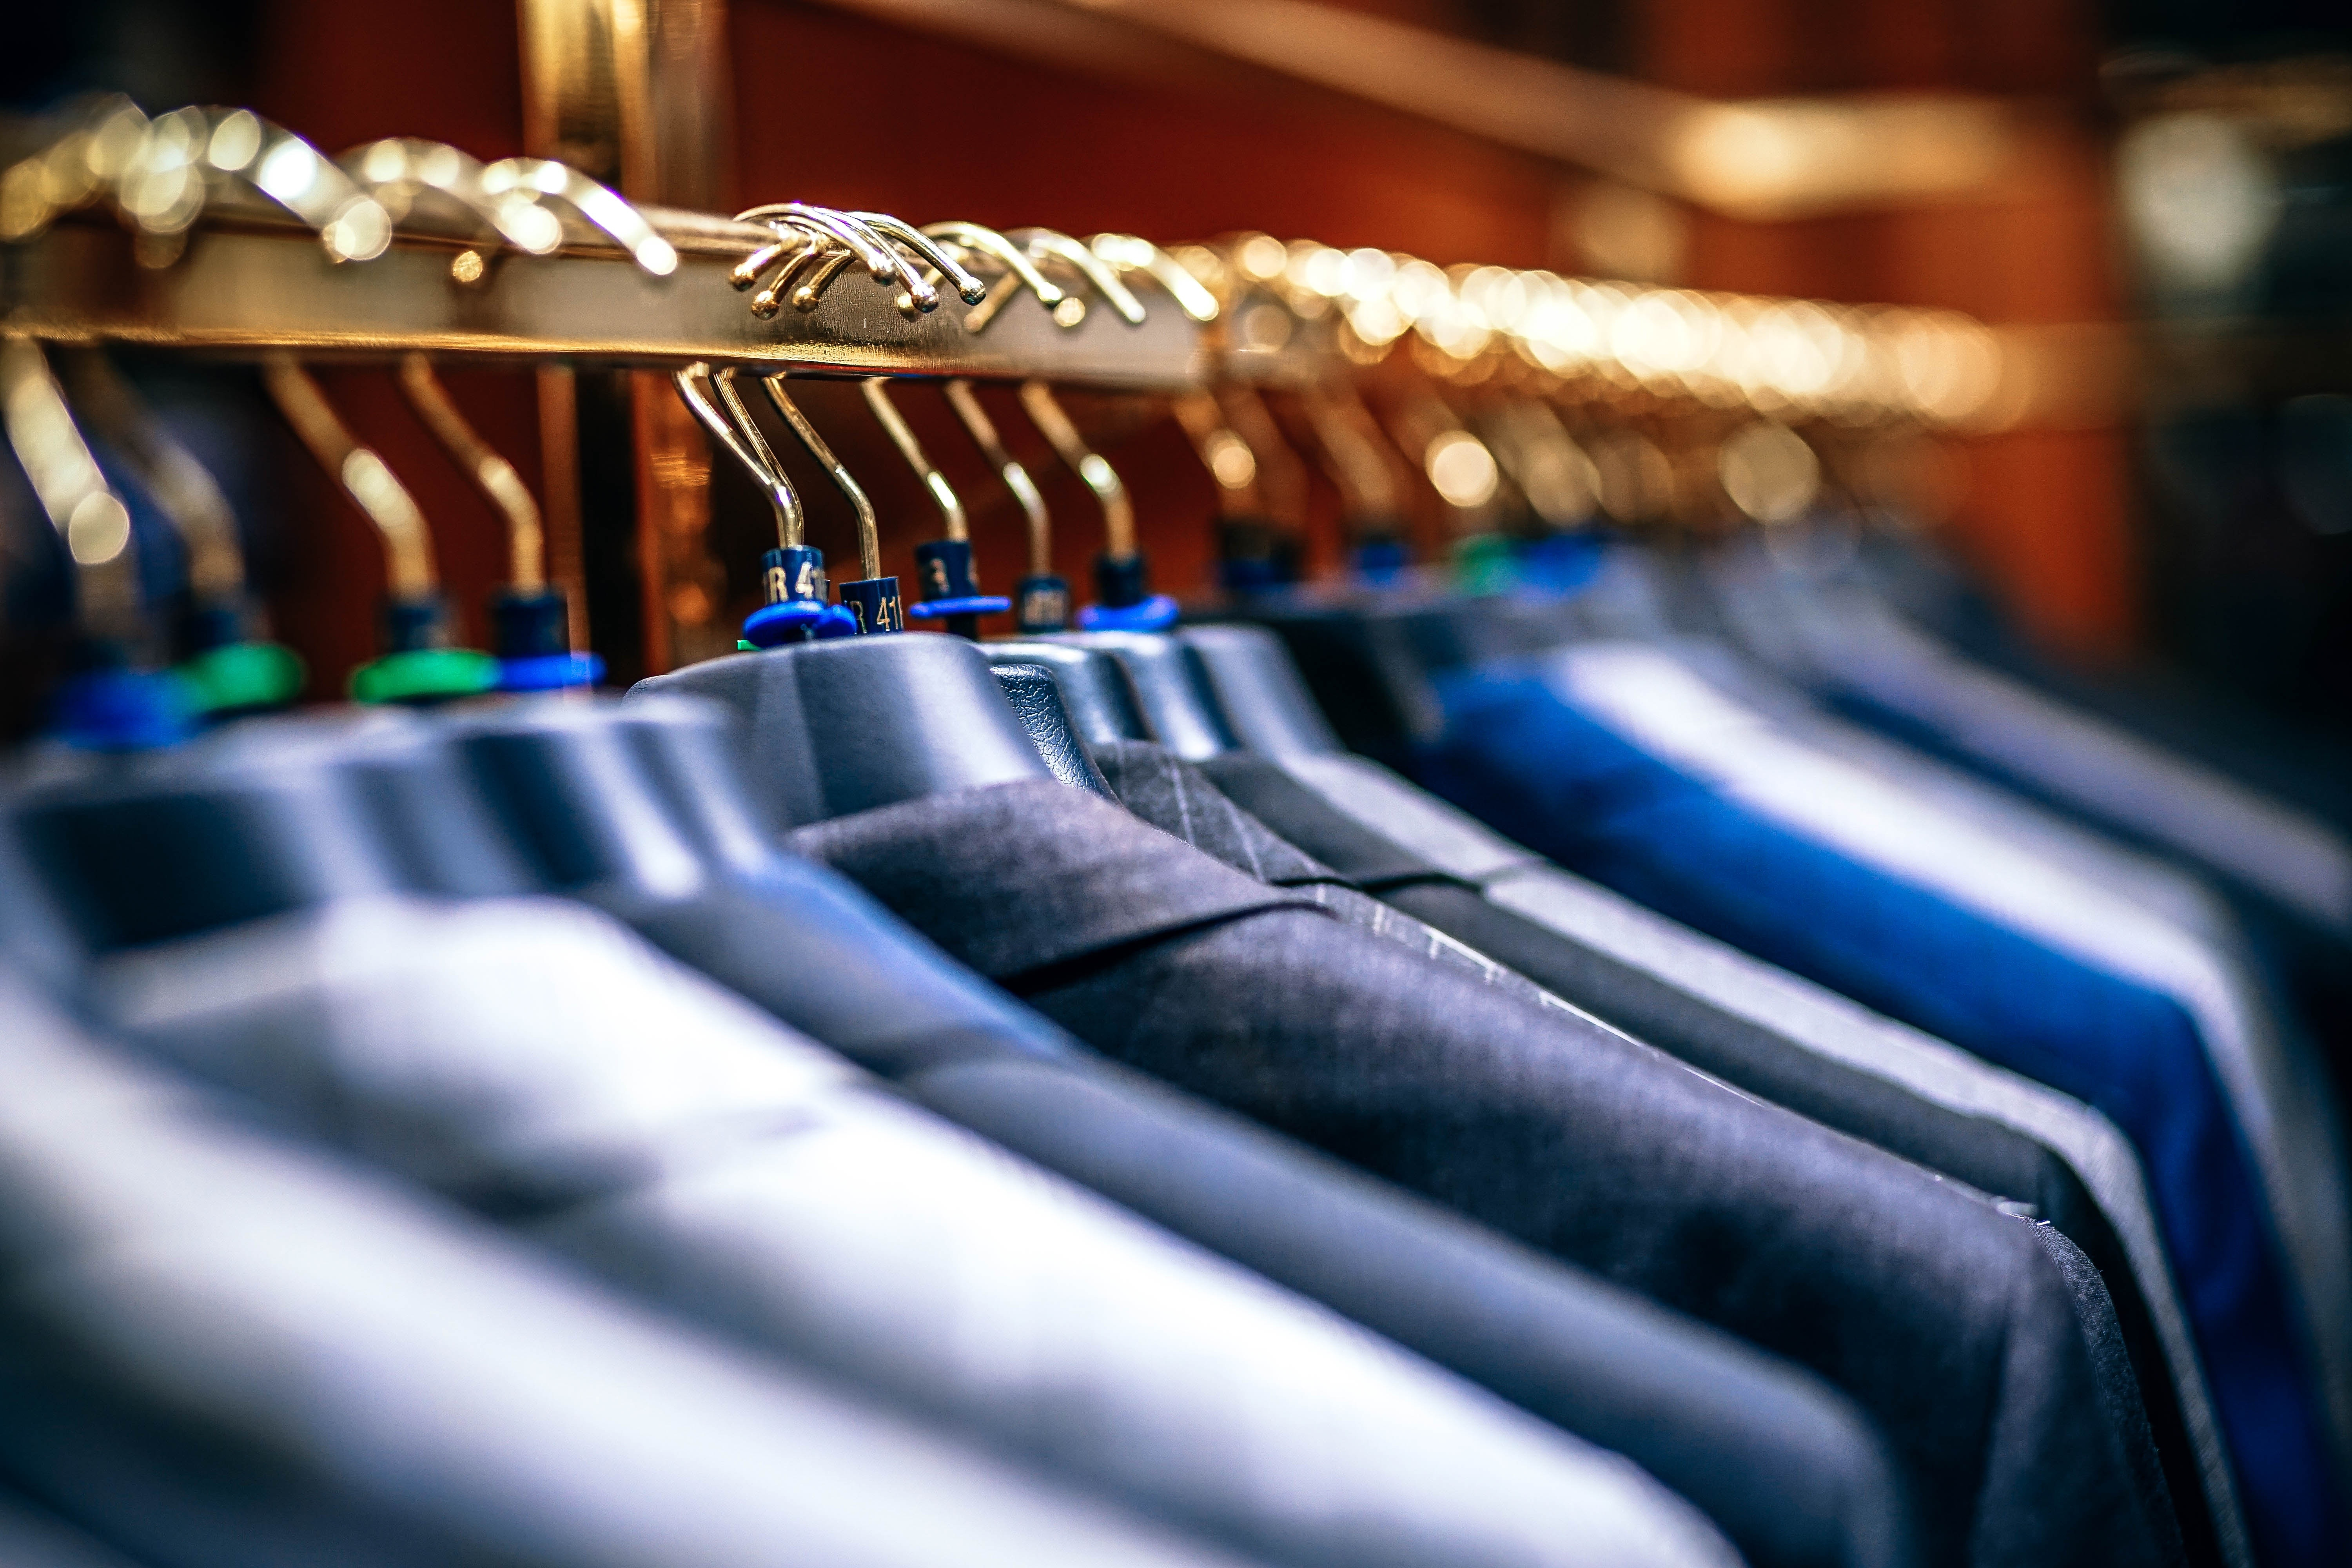 High-end products like Armani suits have psychological prestige effects